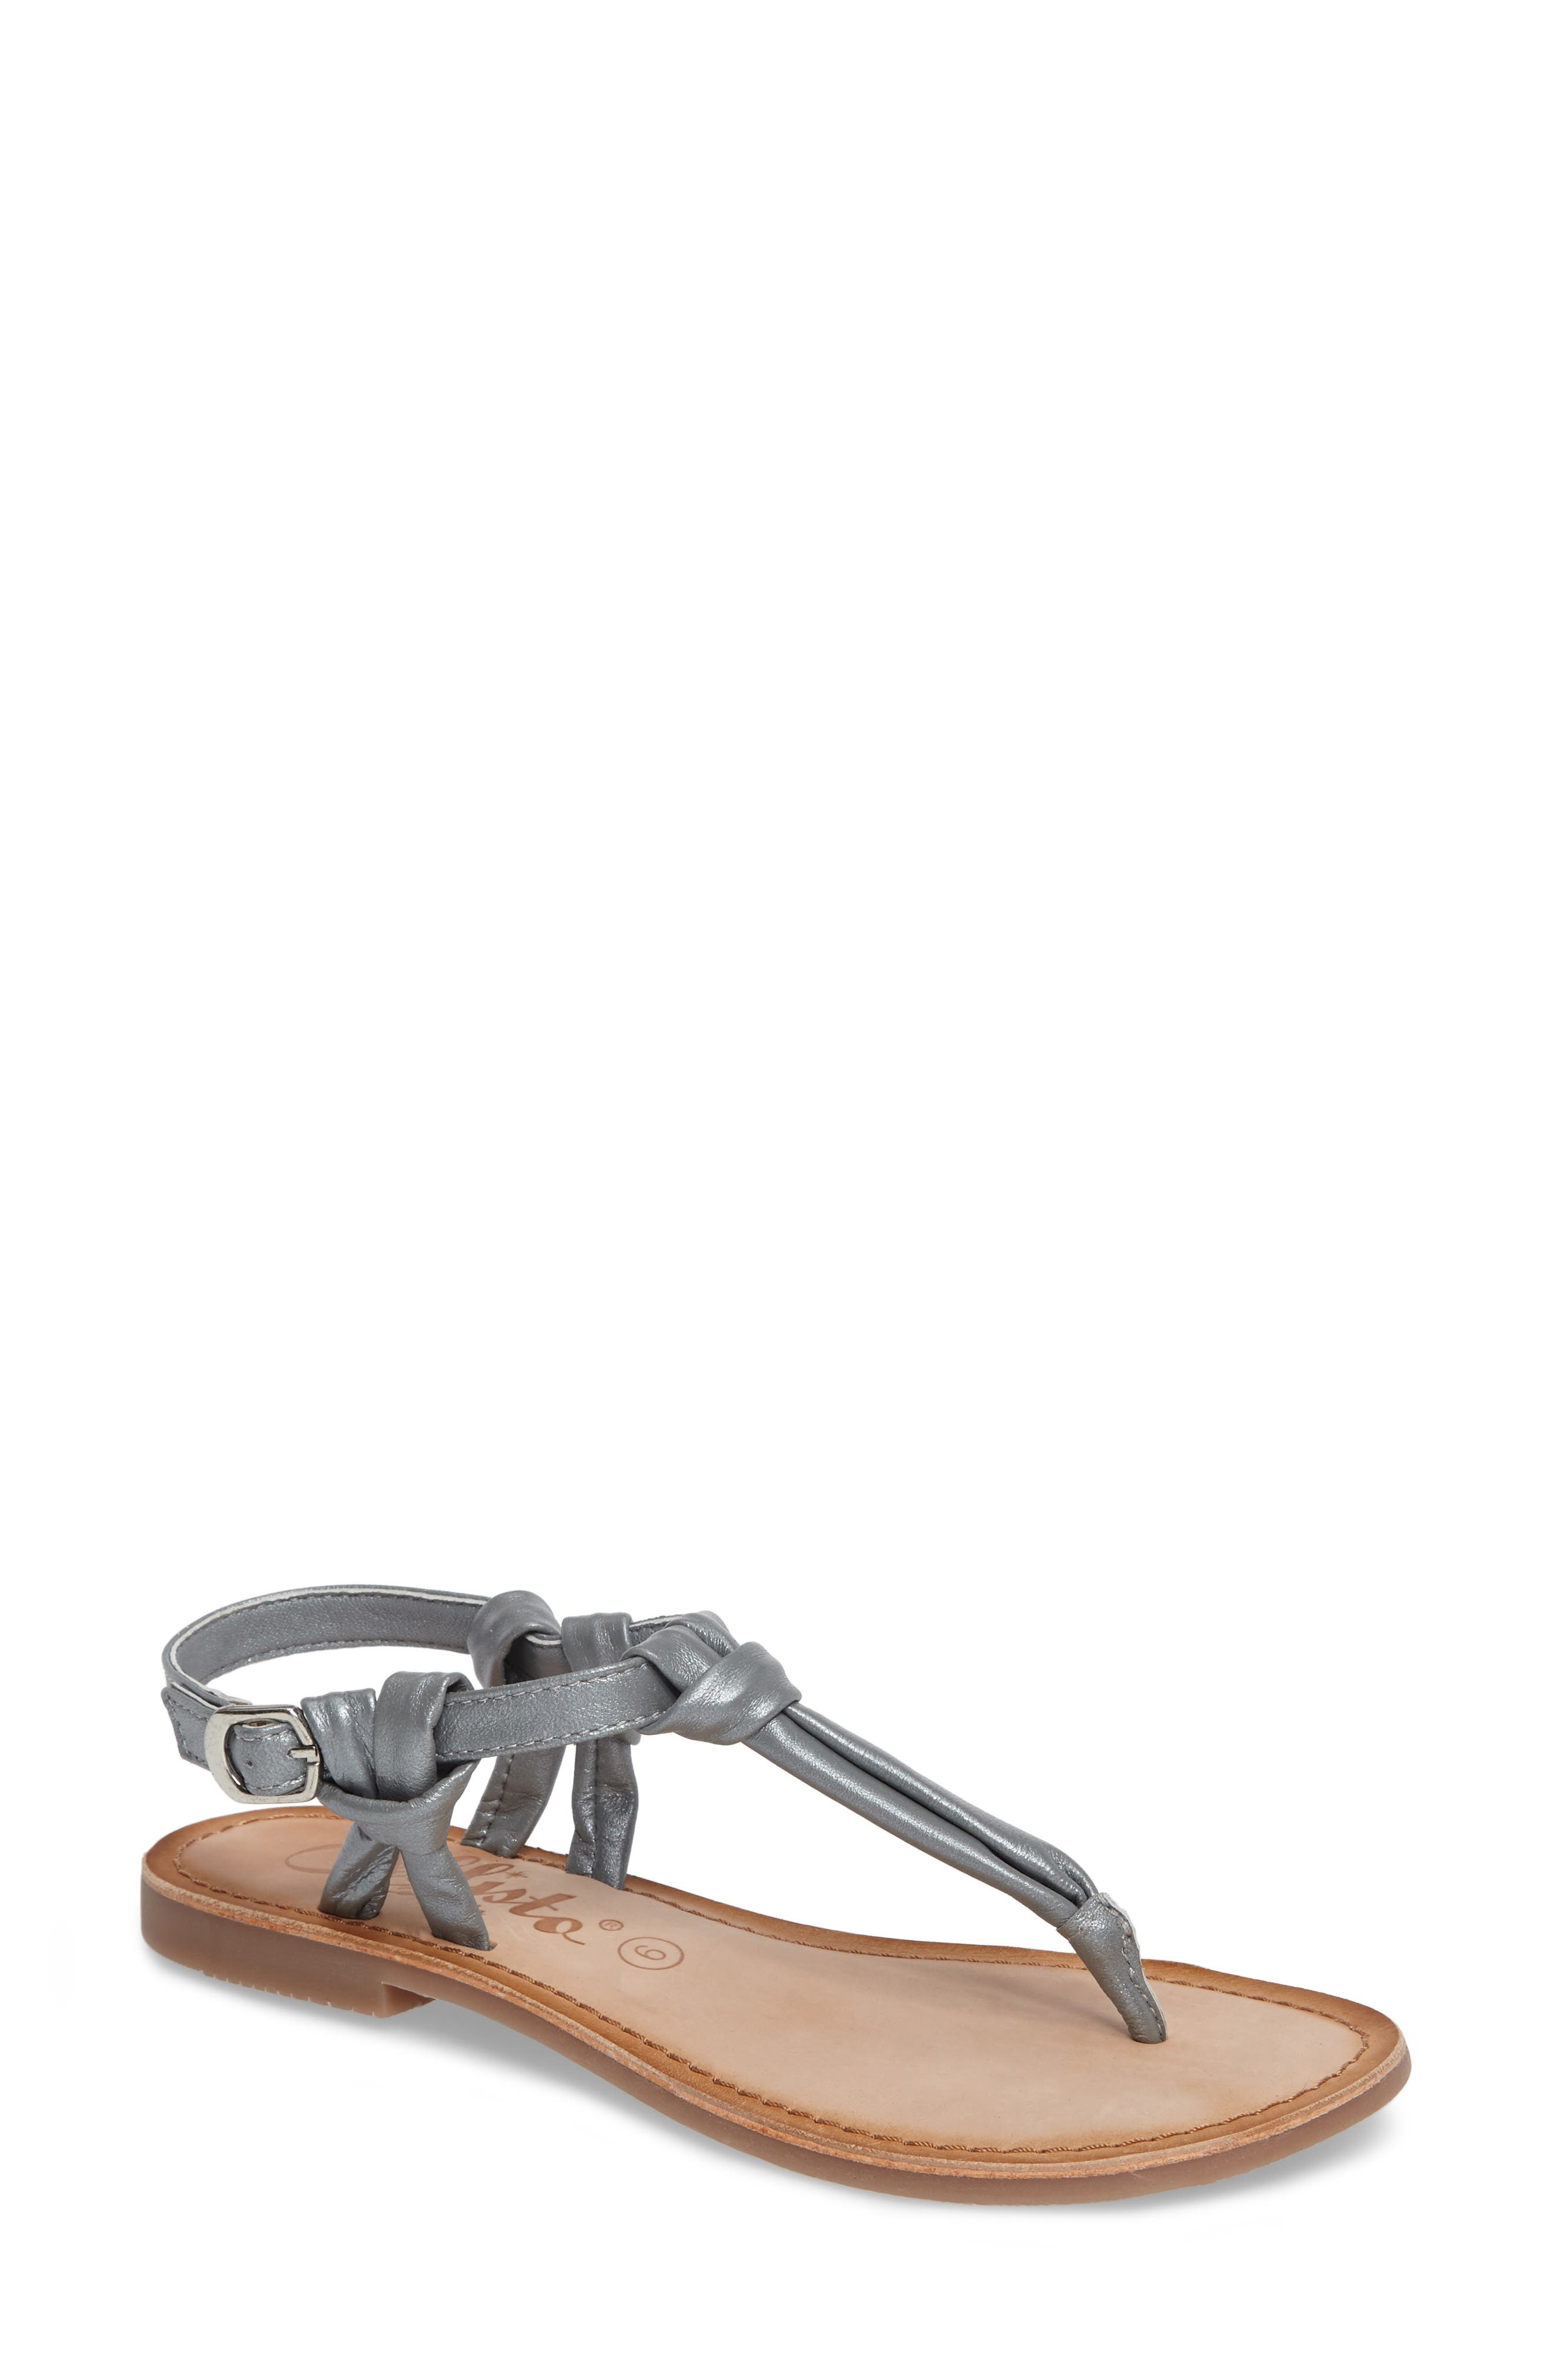 Azza T-Strap Sandal,                         Main,                         color, Pewter Leather